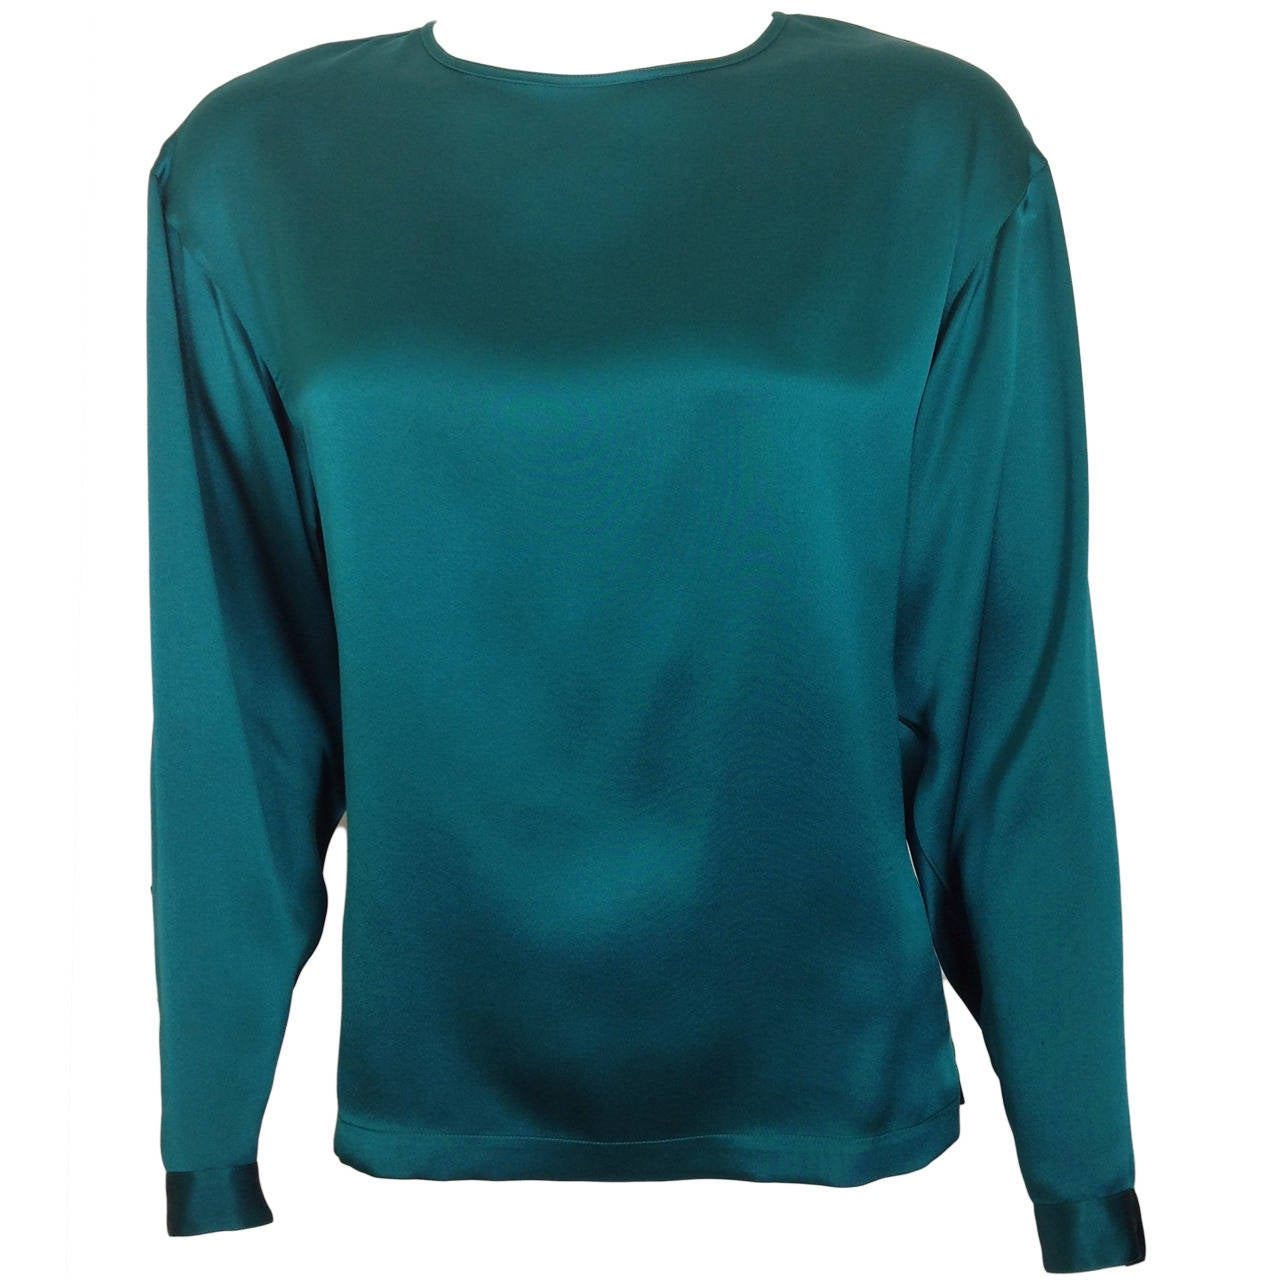 Womens Teal Blouse 50